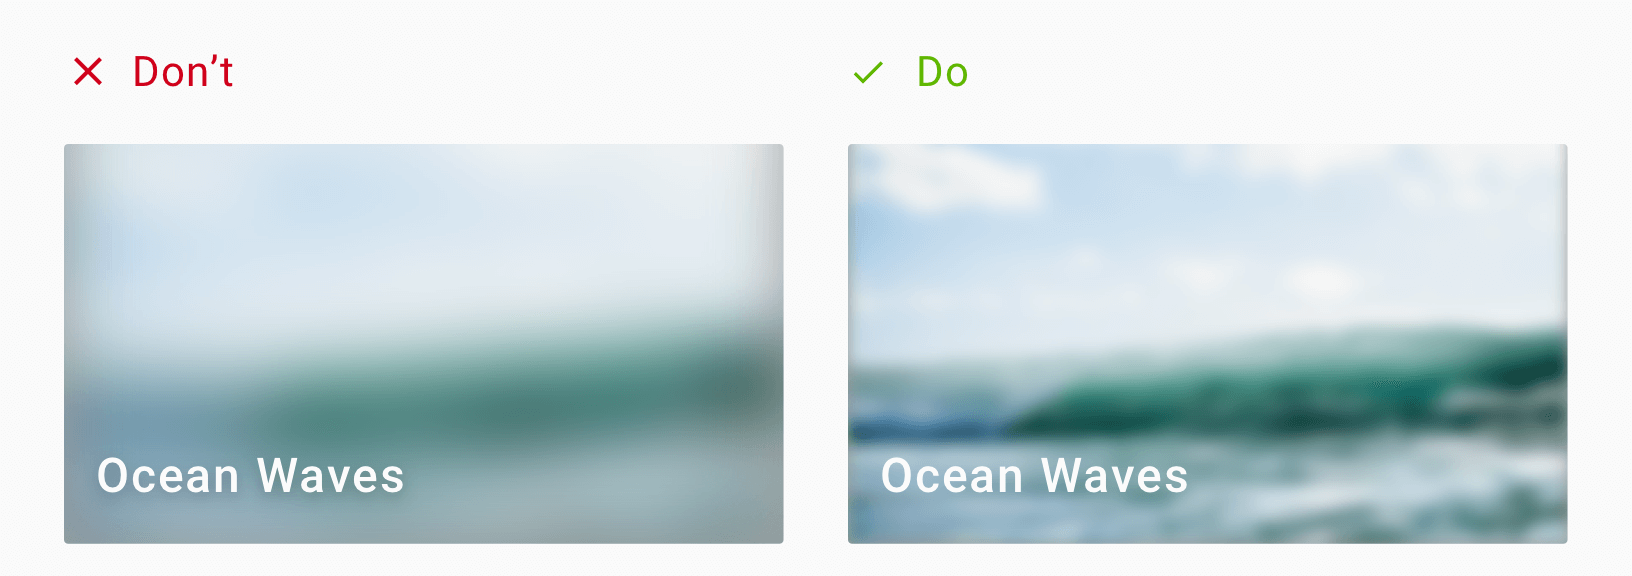 Design Techniques To Display Text Over Background Images